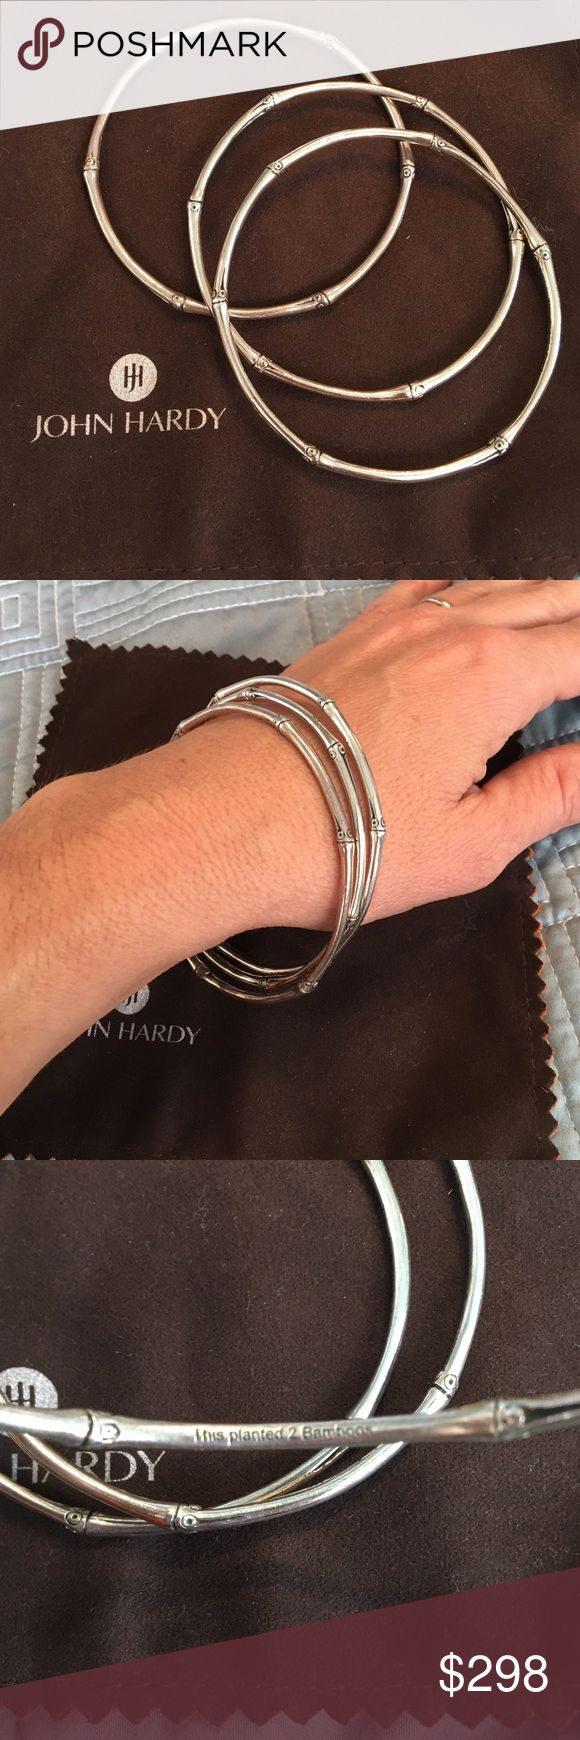 John hardy bamboo bracelets Authentic John hardy bamboo bracelets. 3 silver bracelets. I also have matching necklaces for sale. Like new!! John Hardy Jewelry Bracelets